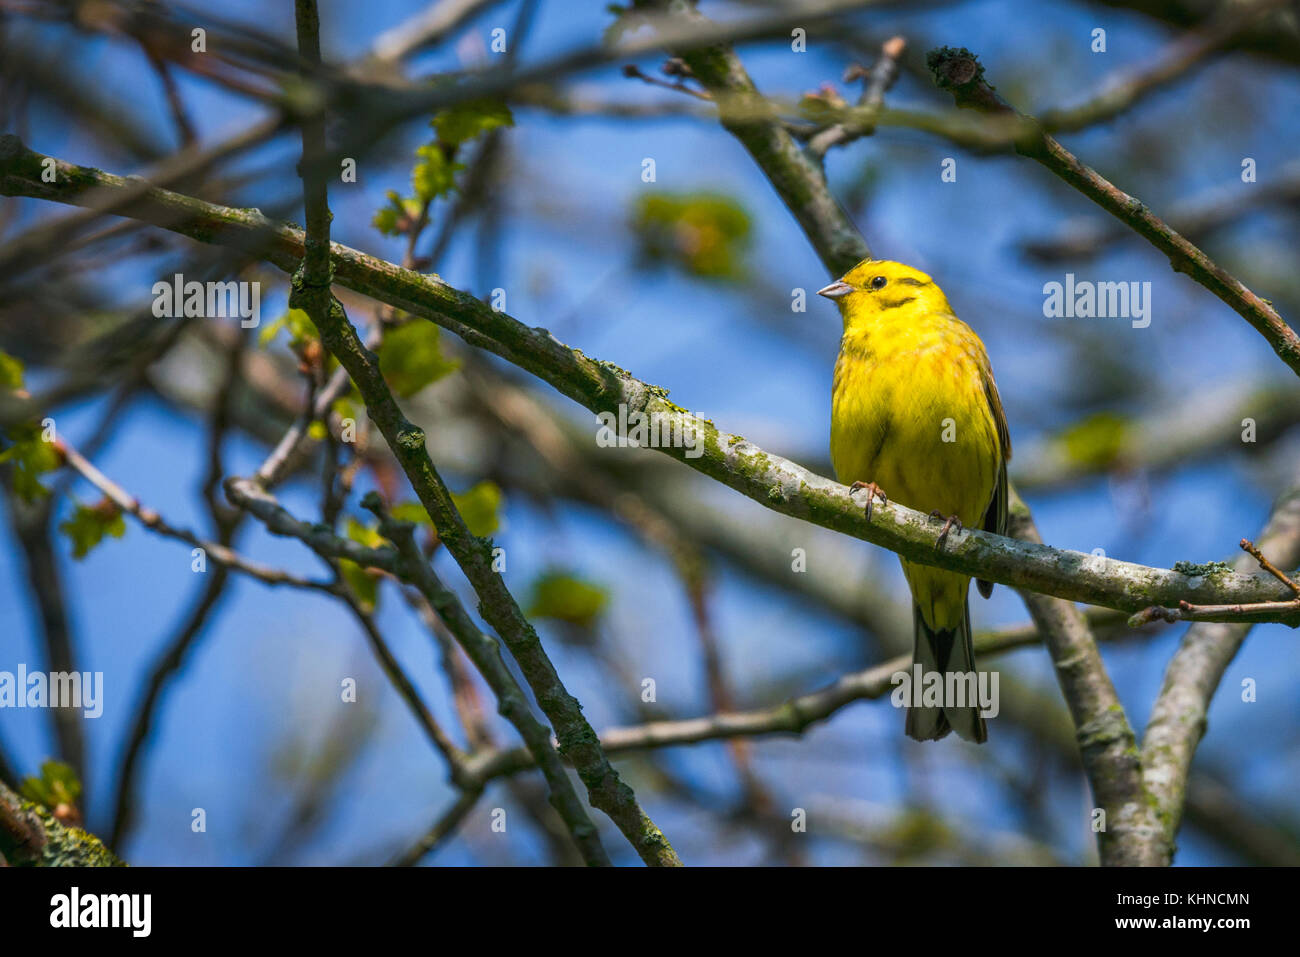 Serinus Serinus bird on a small twig in a tree in the spring with golden feathers - Stock Image